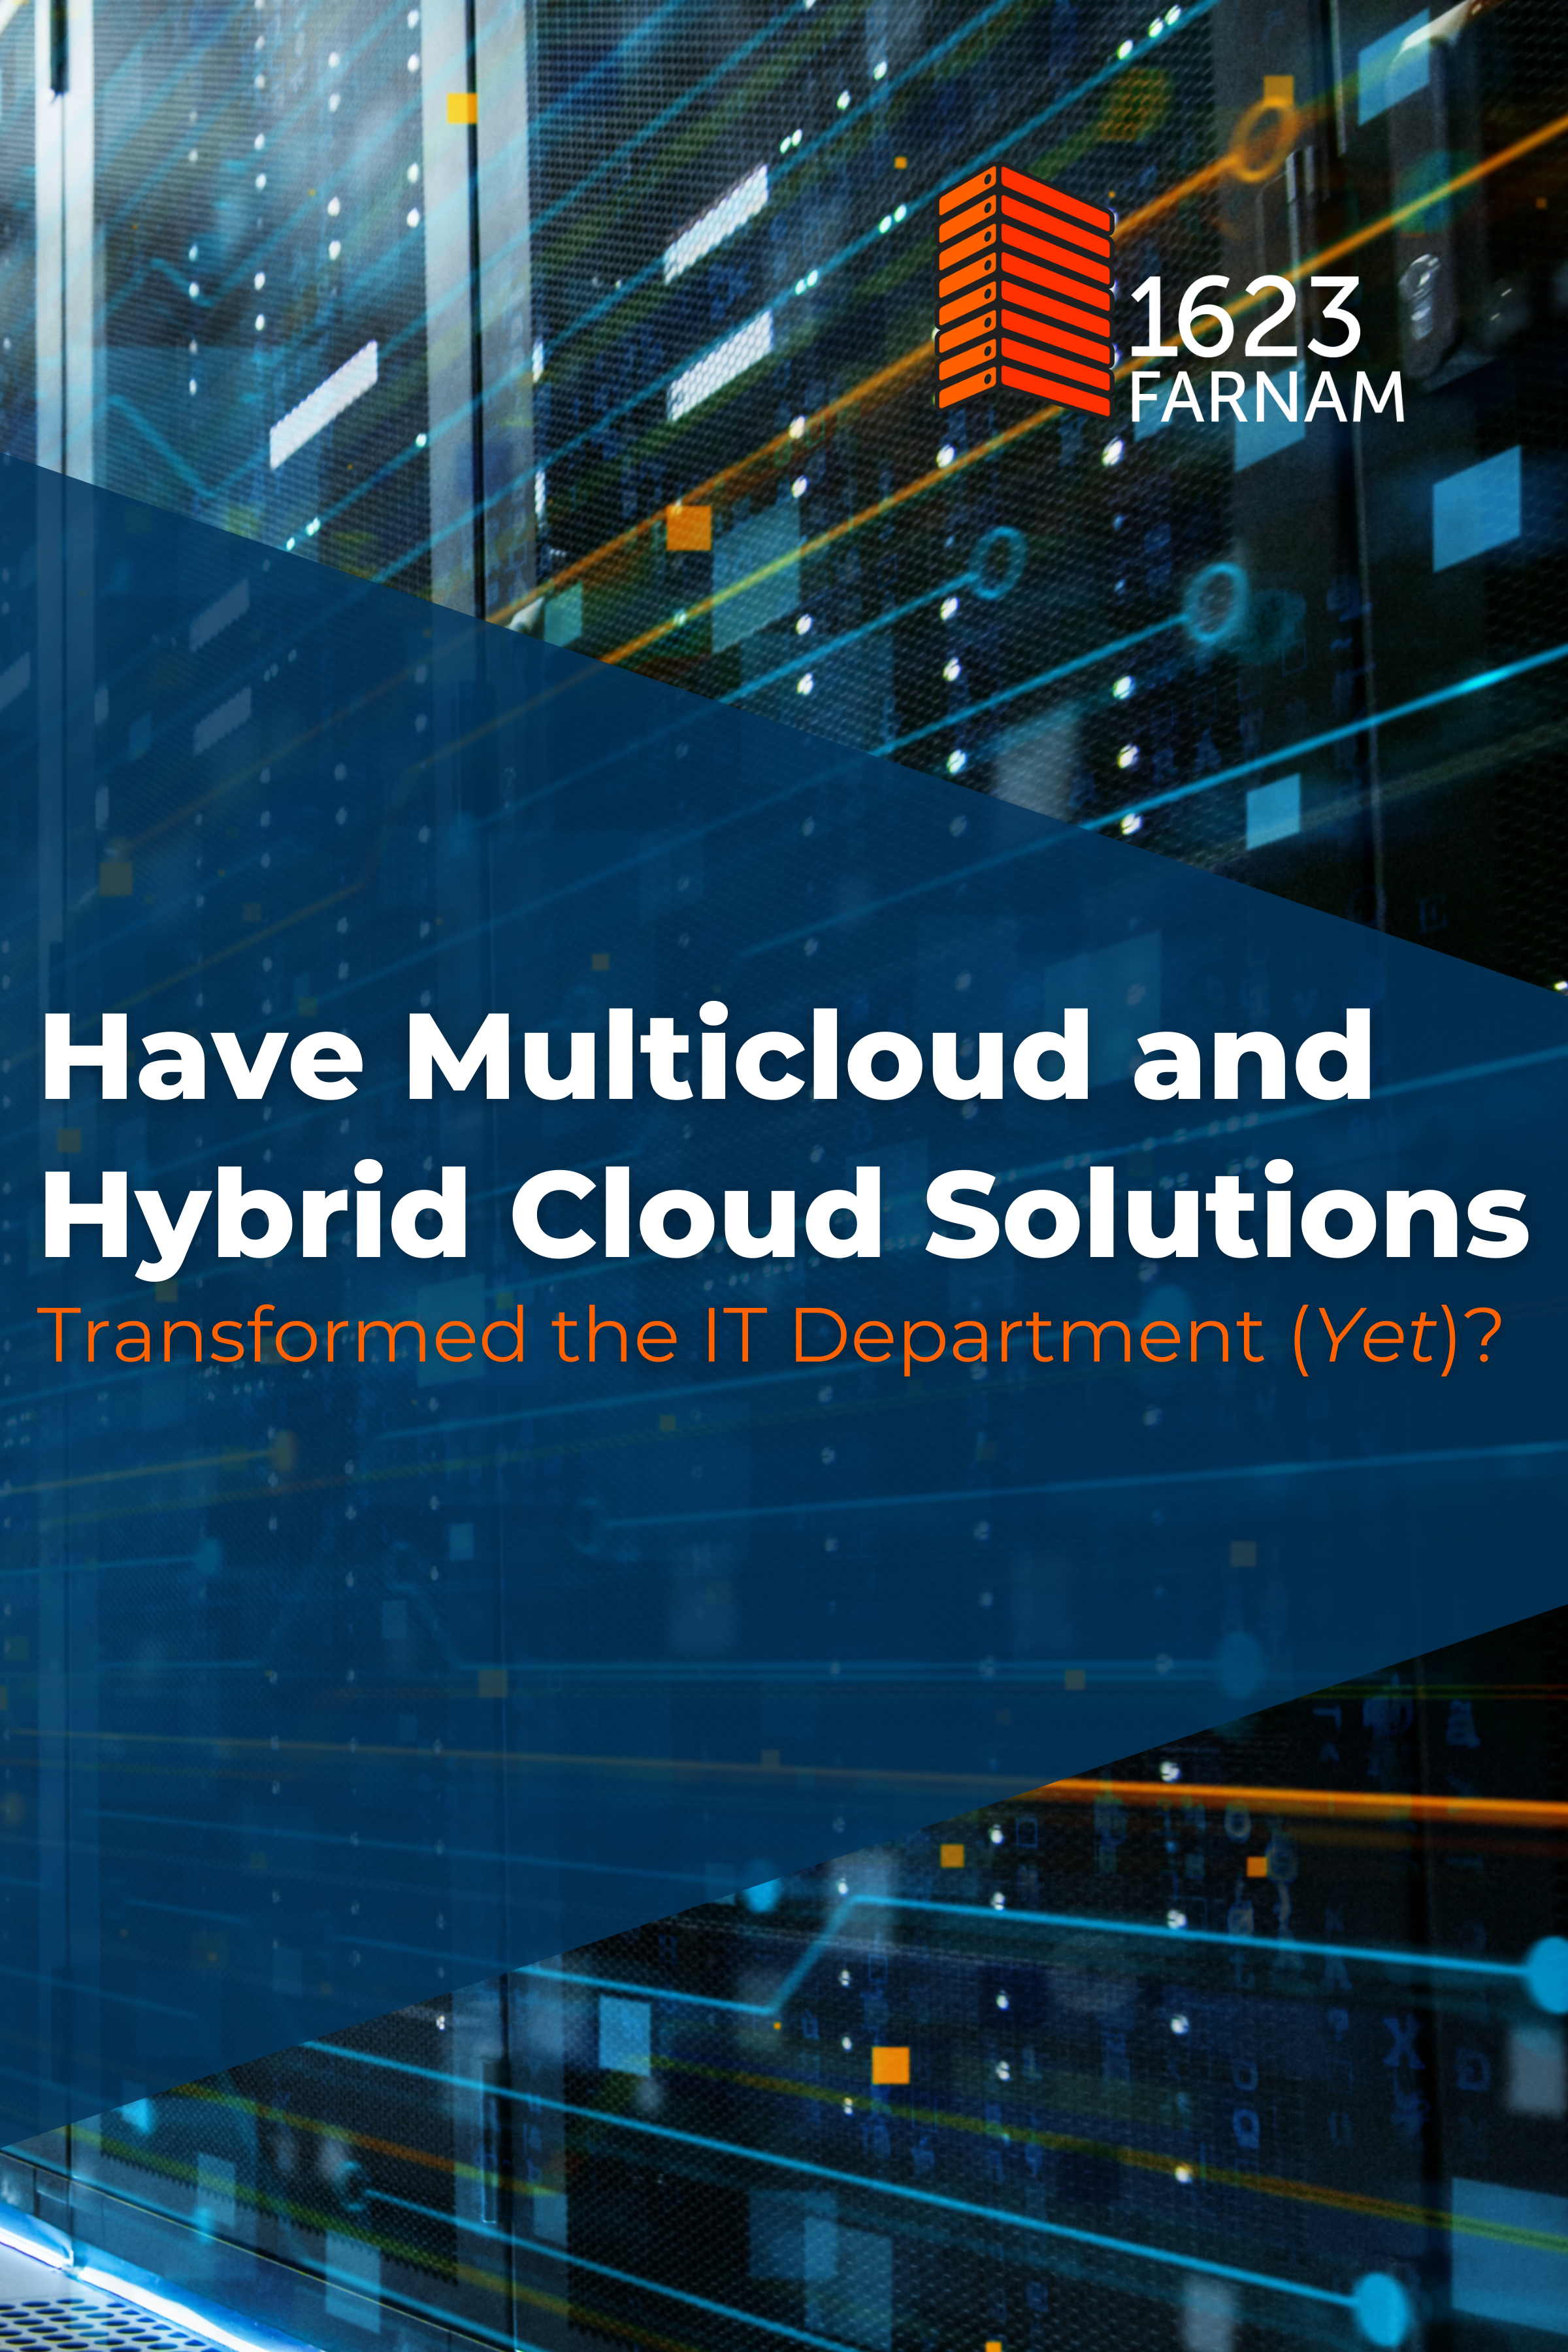 Have multicloud and hybrid cloud soutions transformed the IT department (yet)?